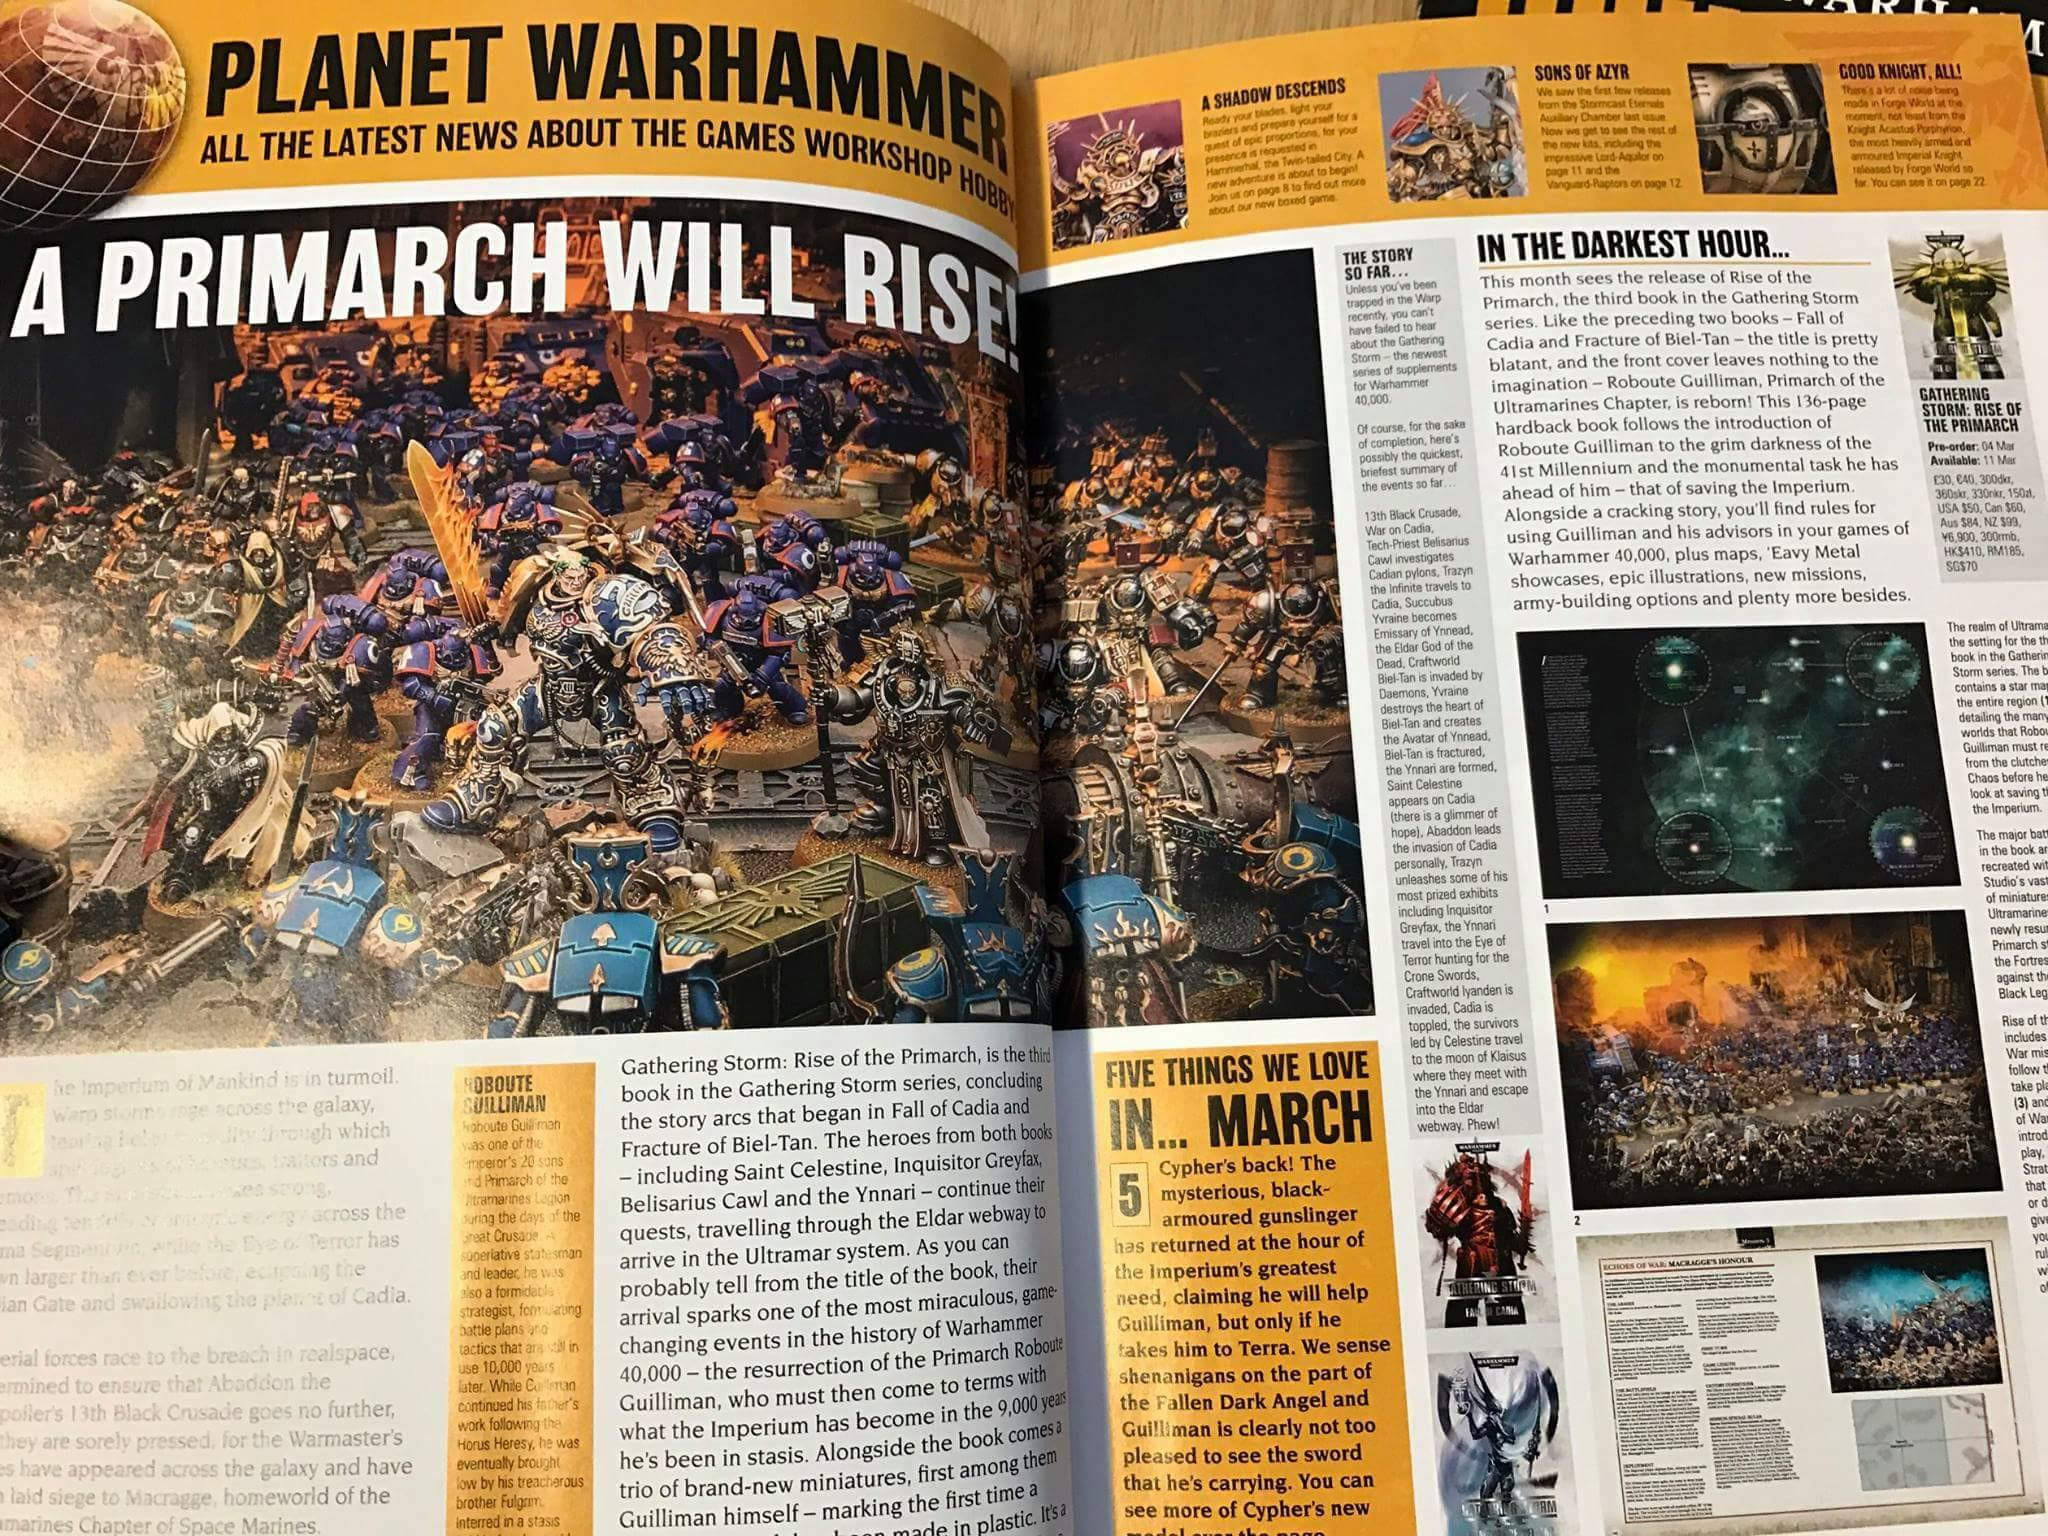 More details | Warhammer 40,000 | Know Your Meme